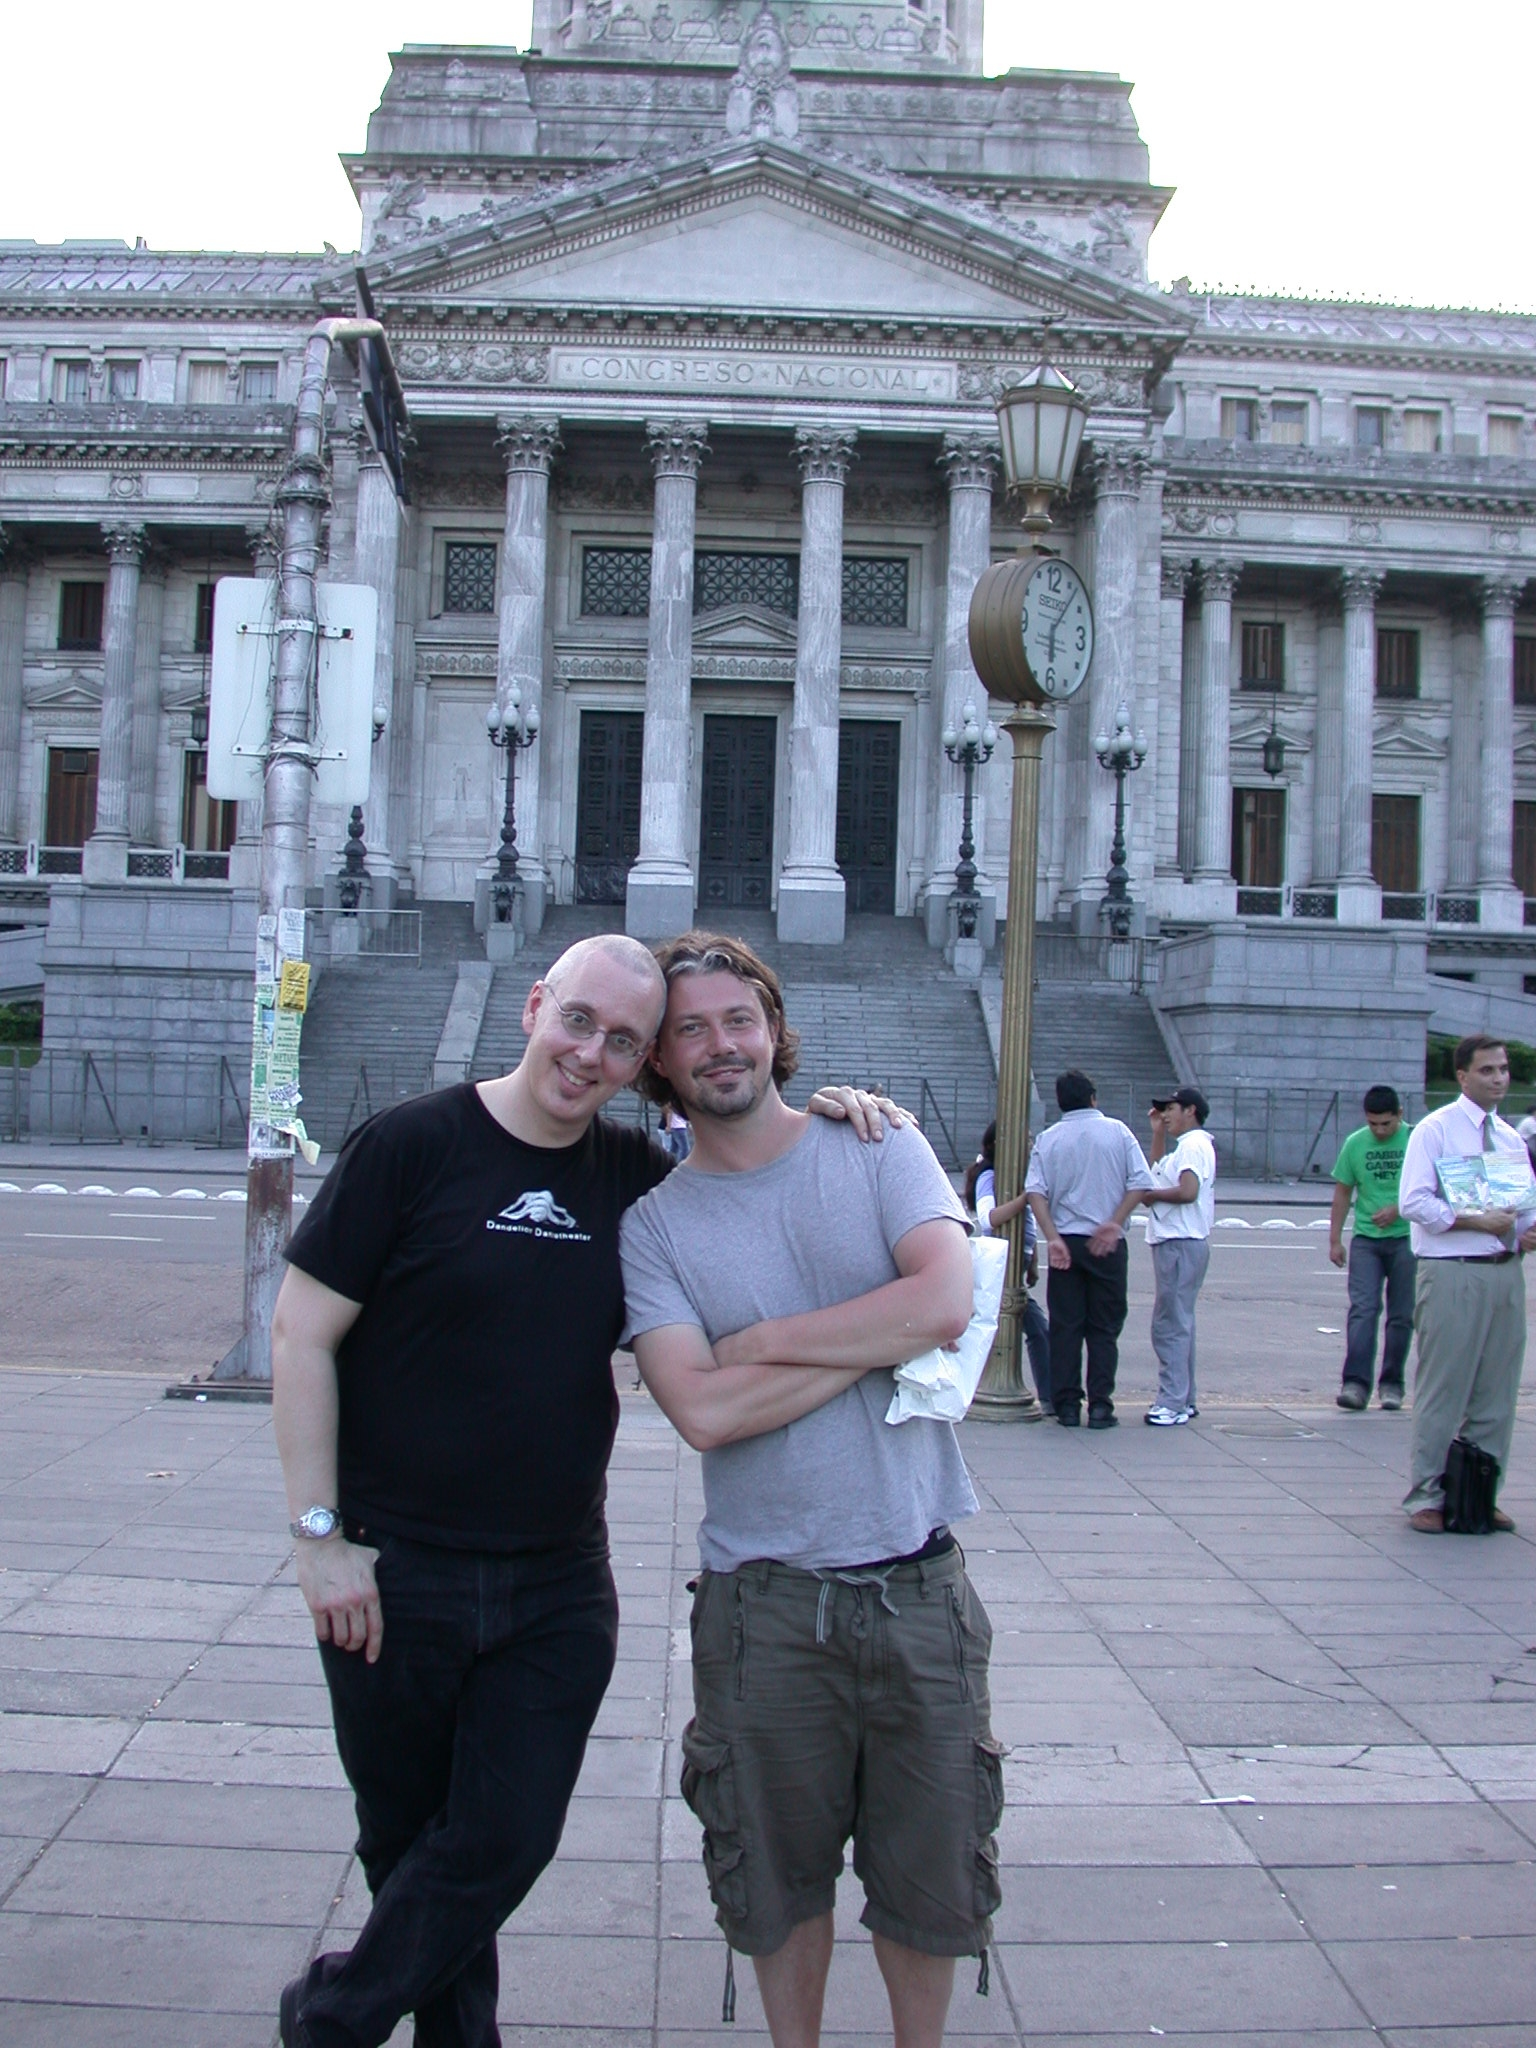 Jim e Sparklepants and Frank from Montreal, Buenos Aires, Argentina